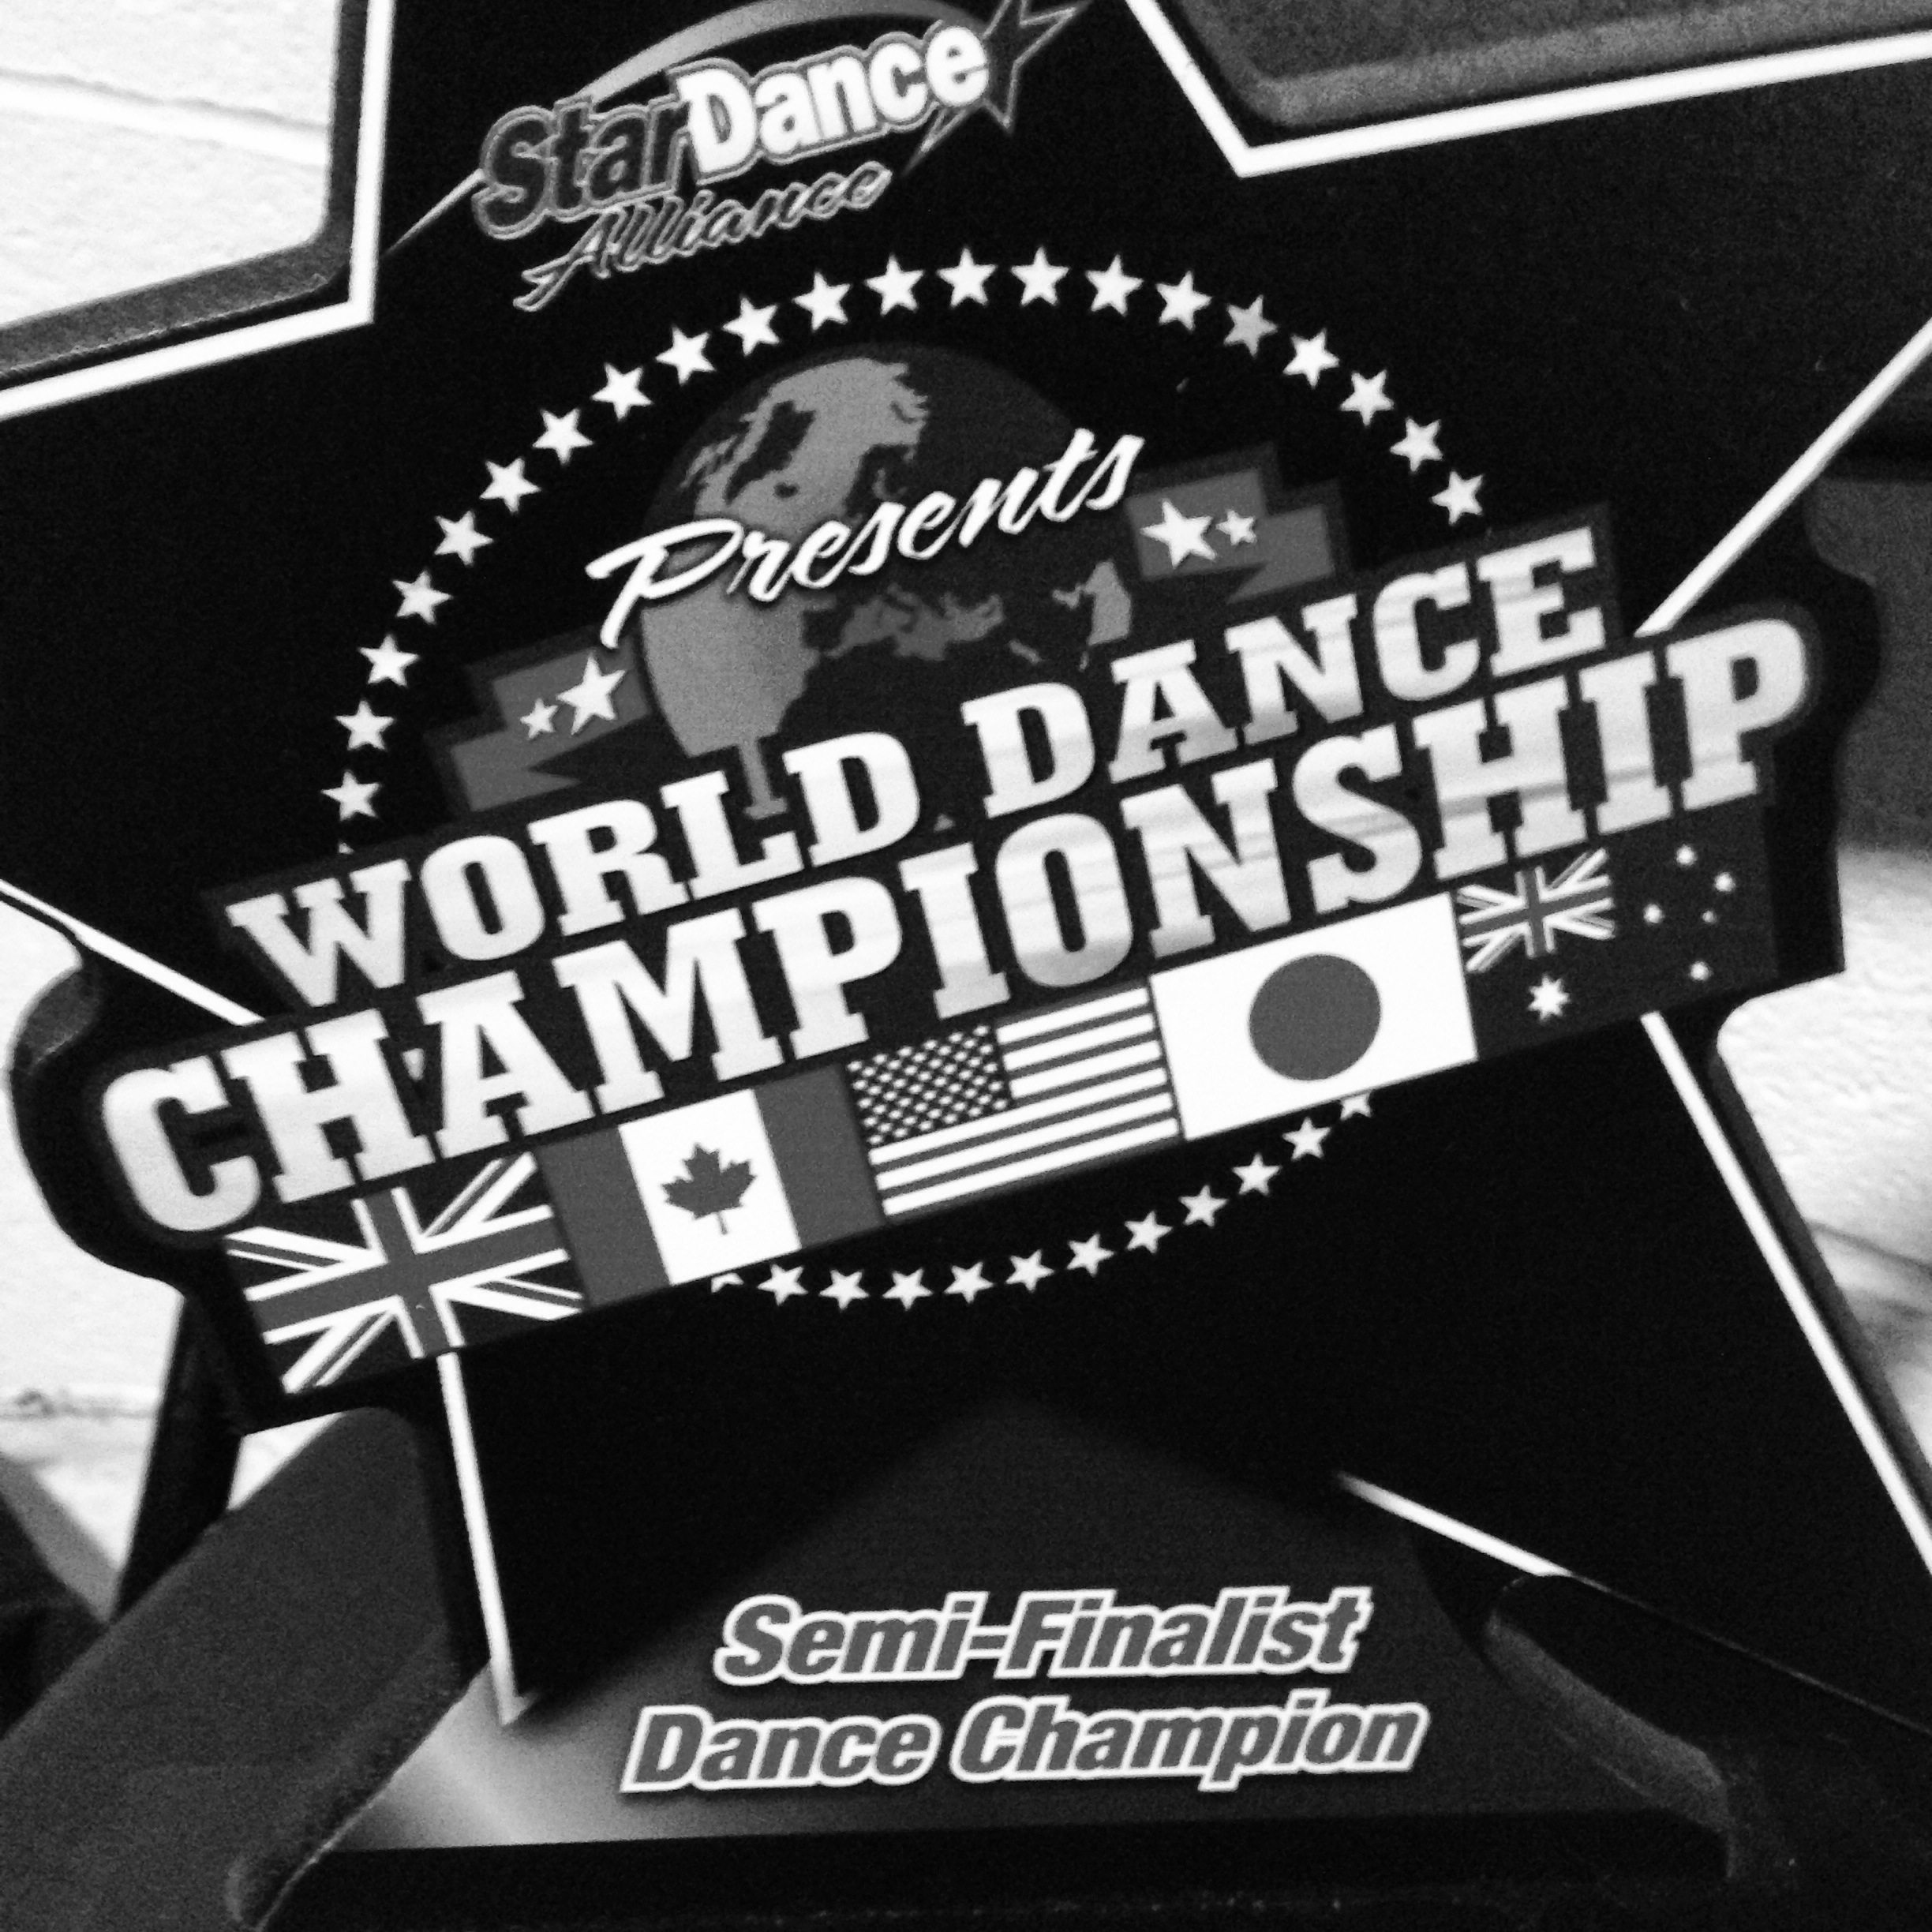 World Dance Championship August 2014